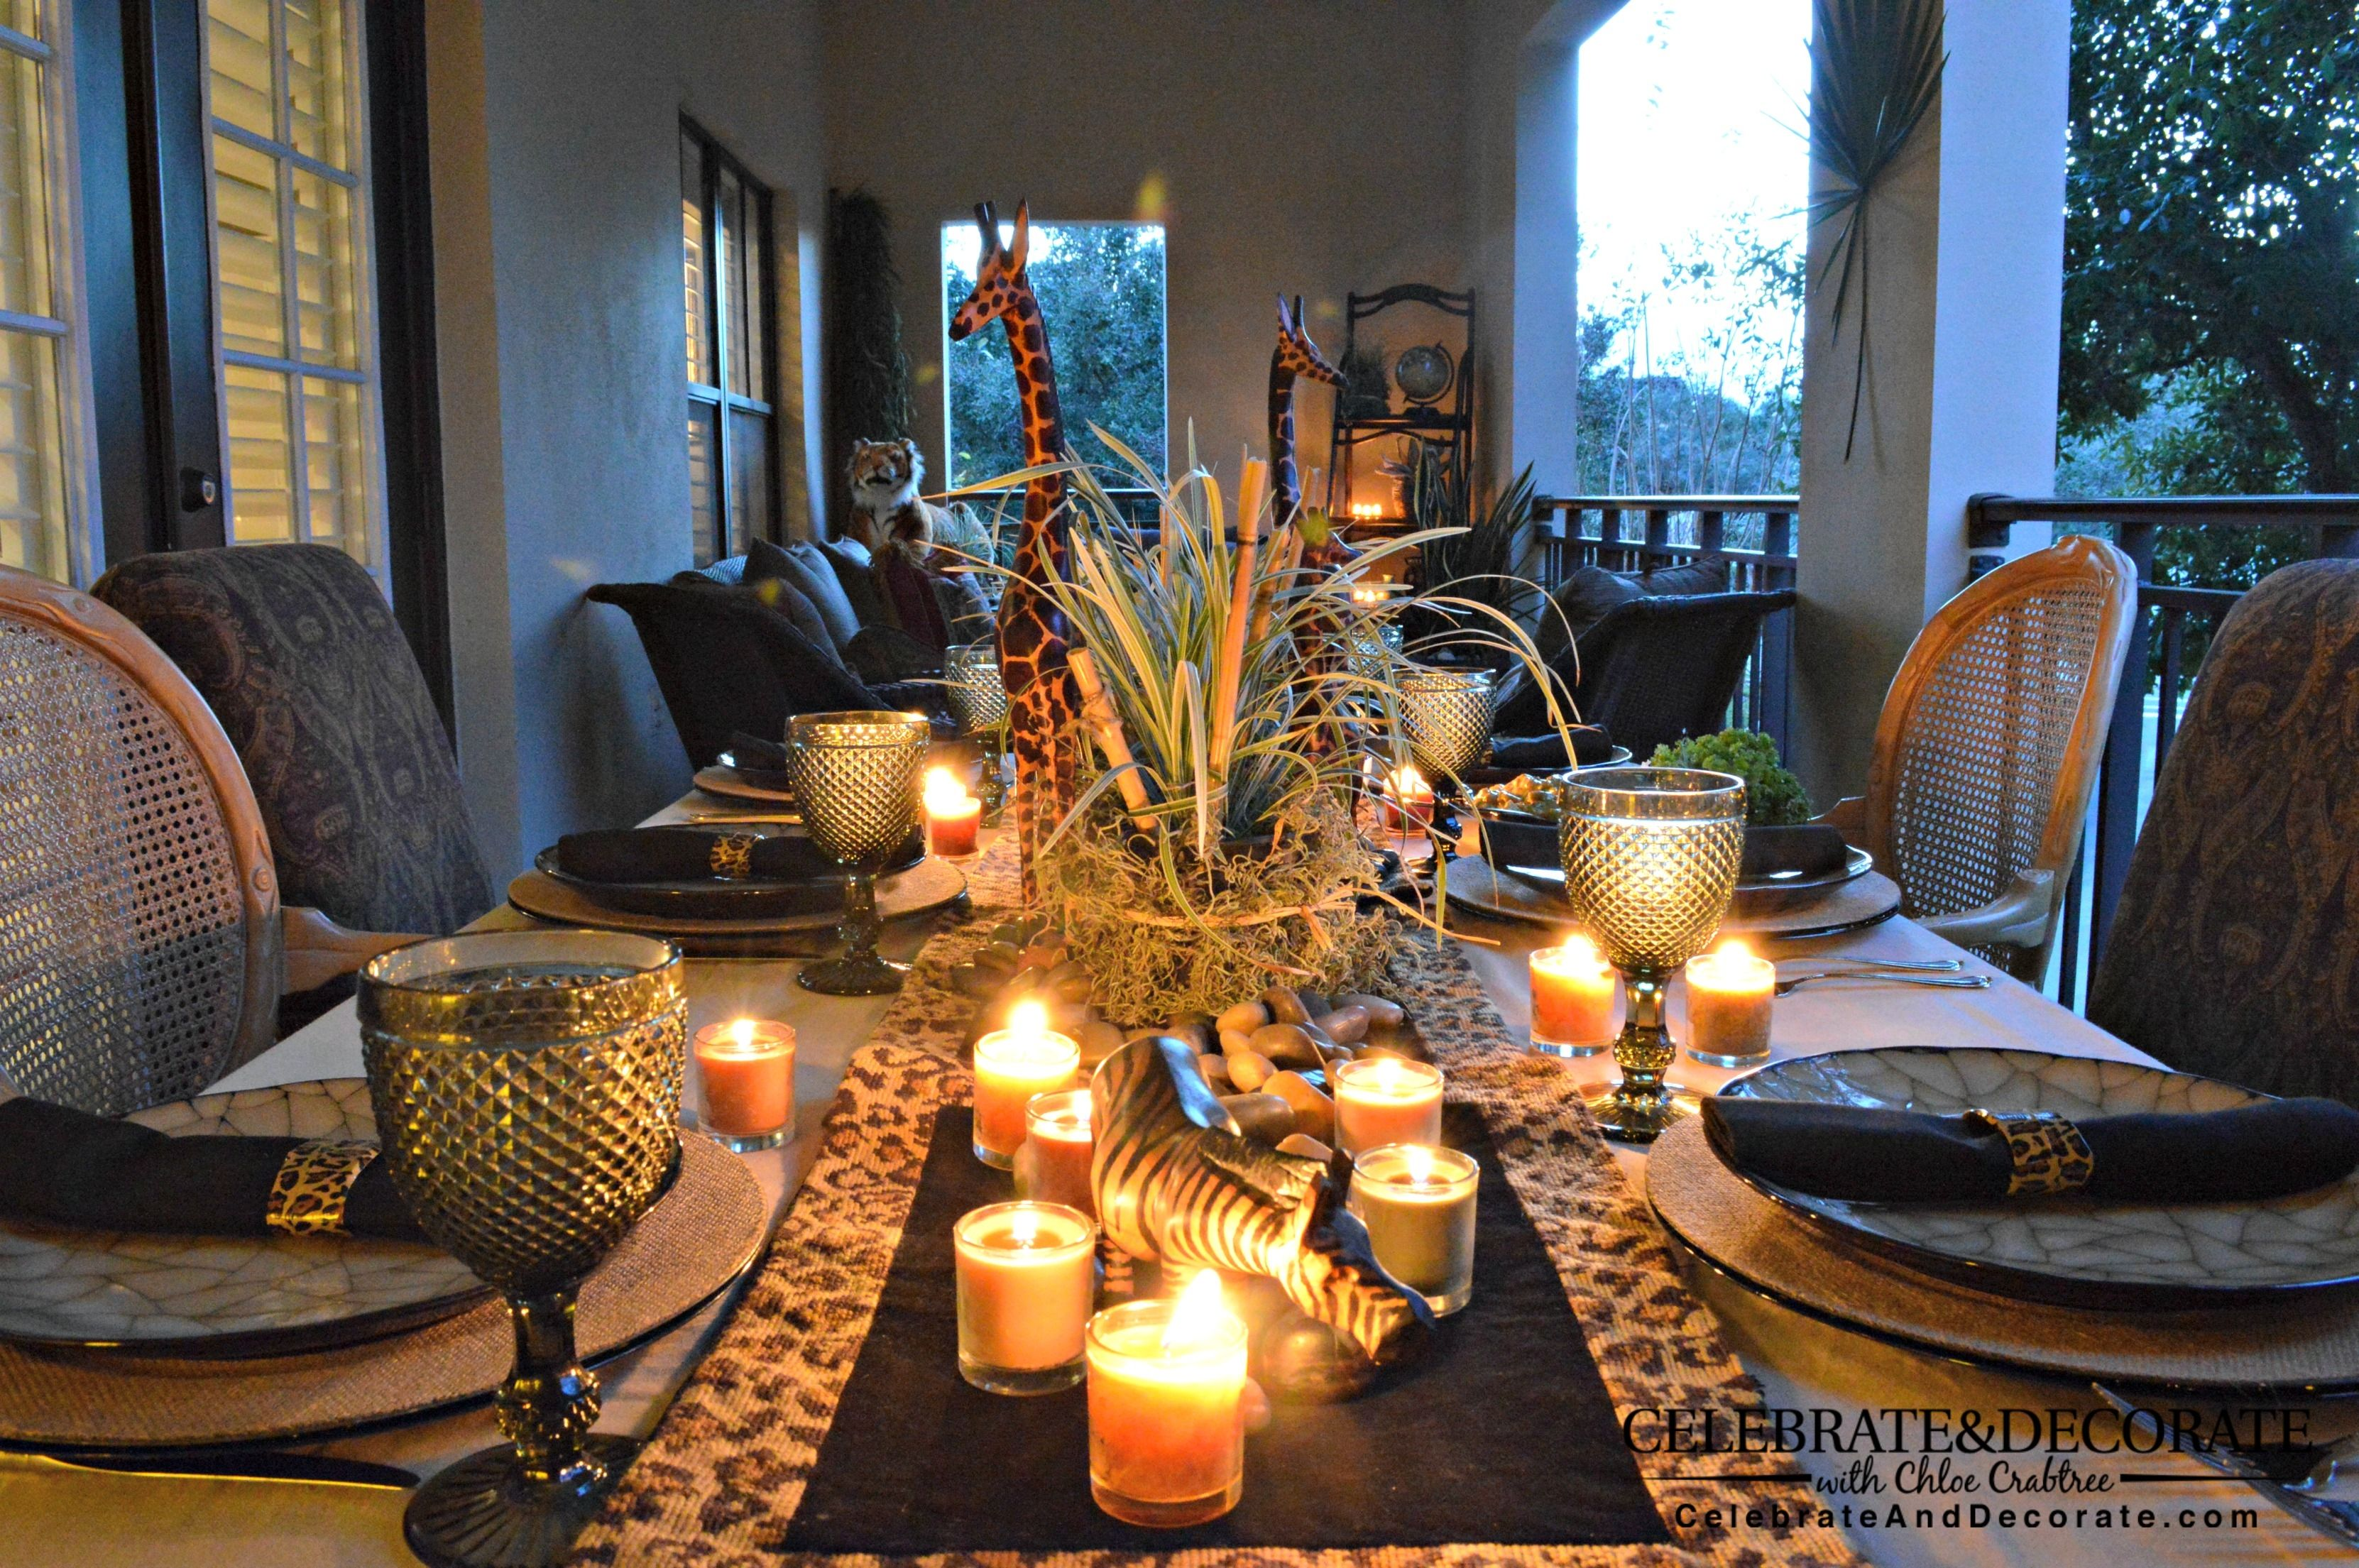 5 Photos Of The African Themed Party Decorations Safari